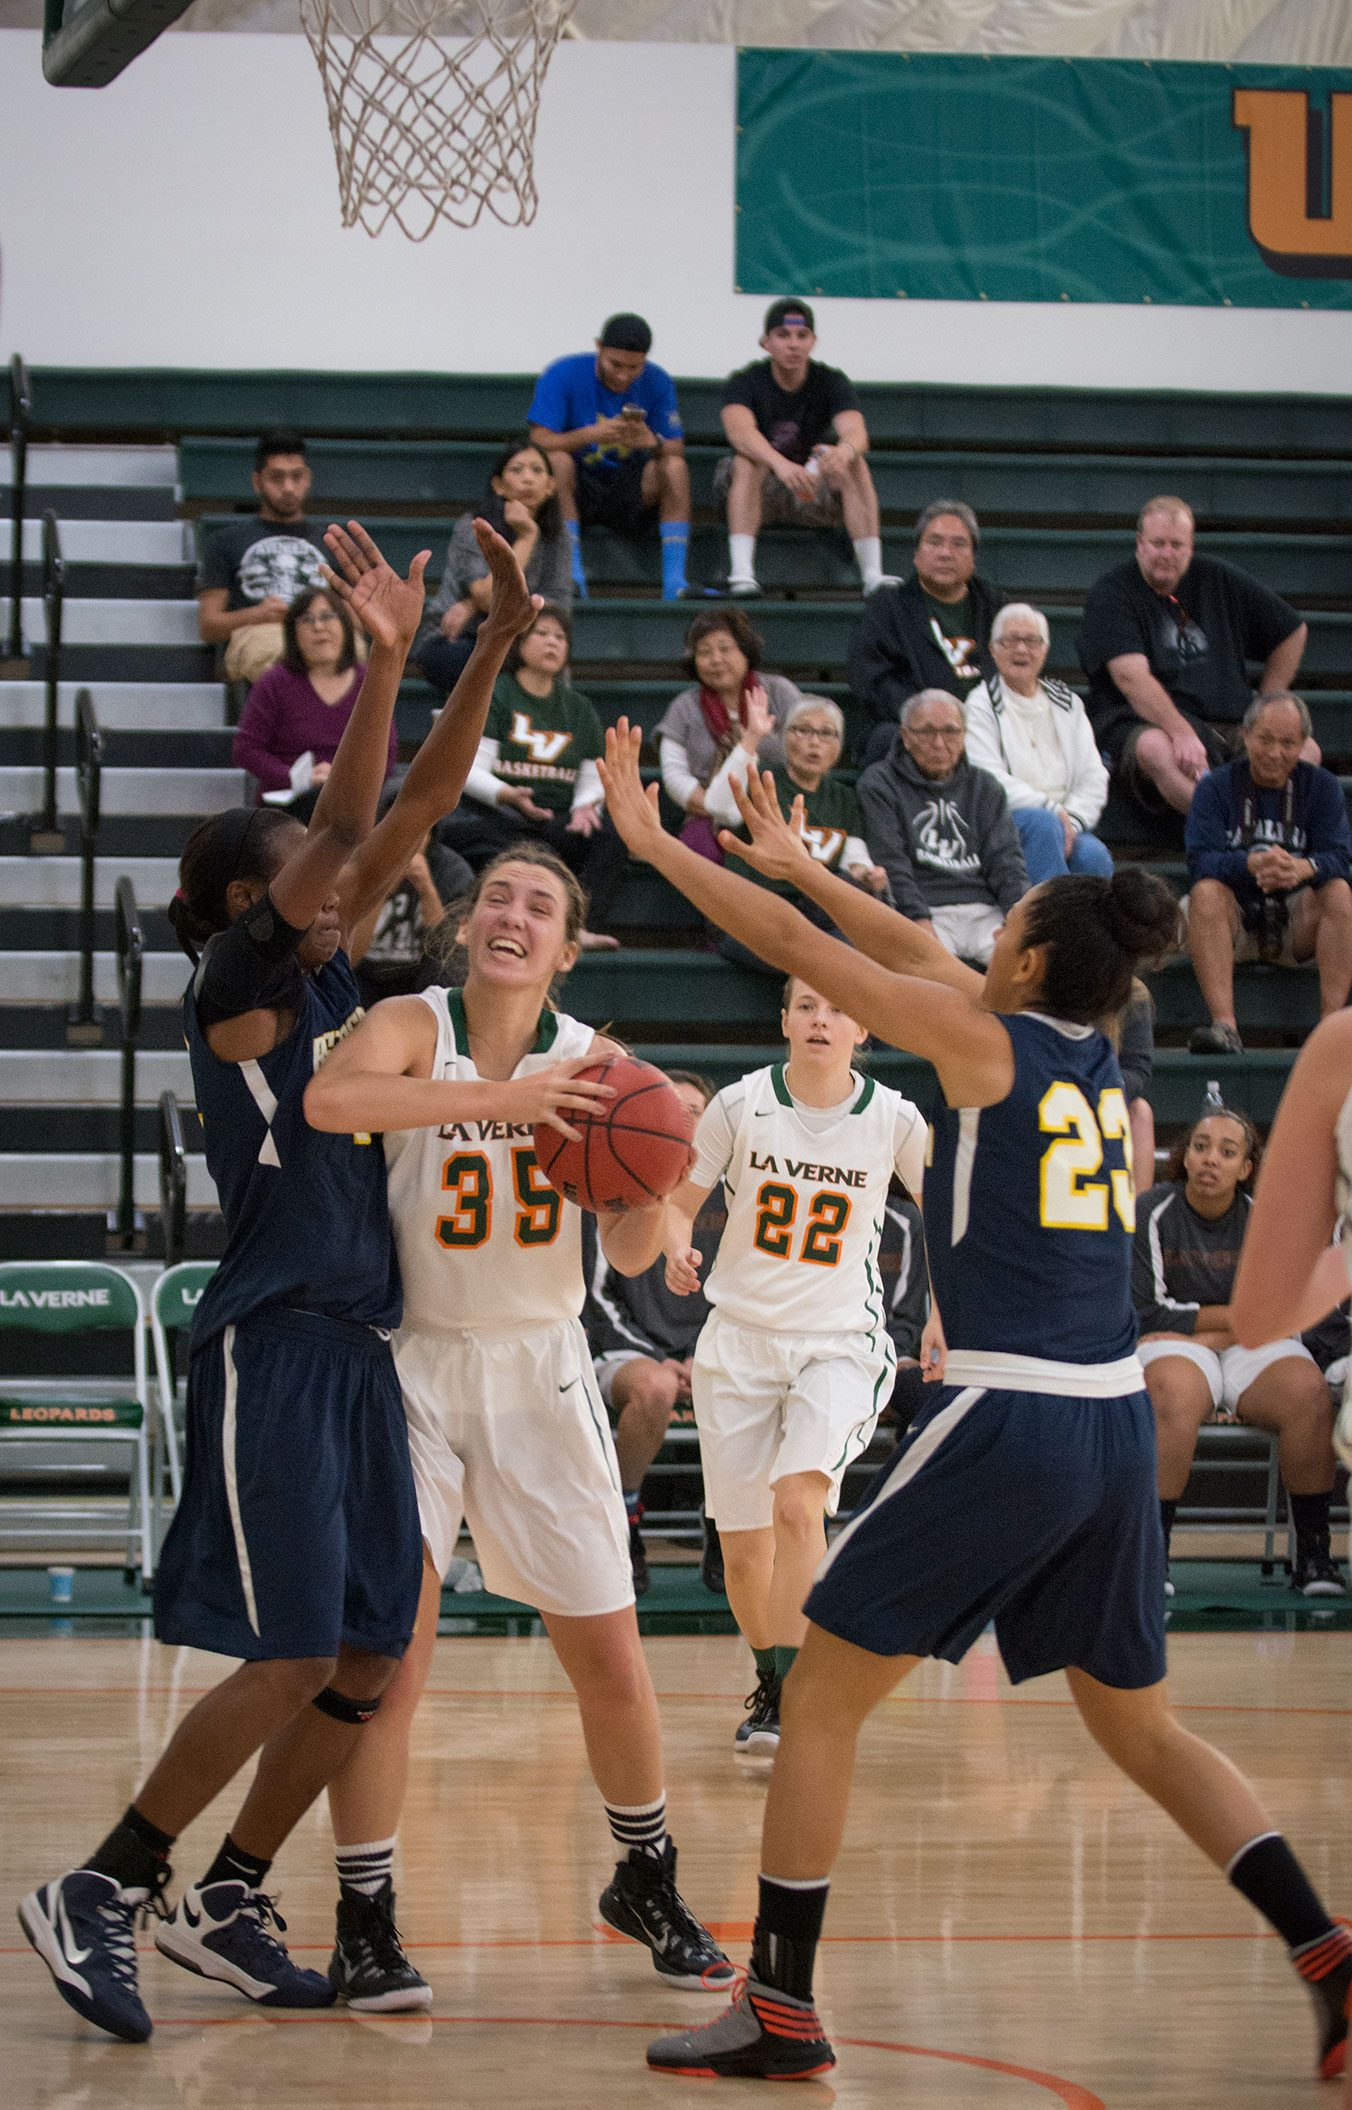 Leopards win first game of season | Campus Times